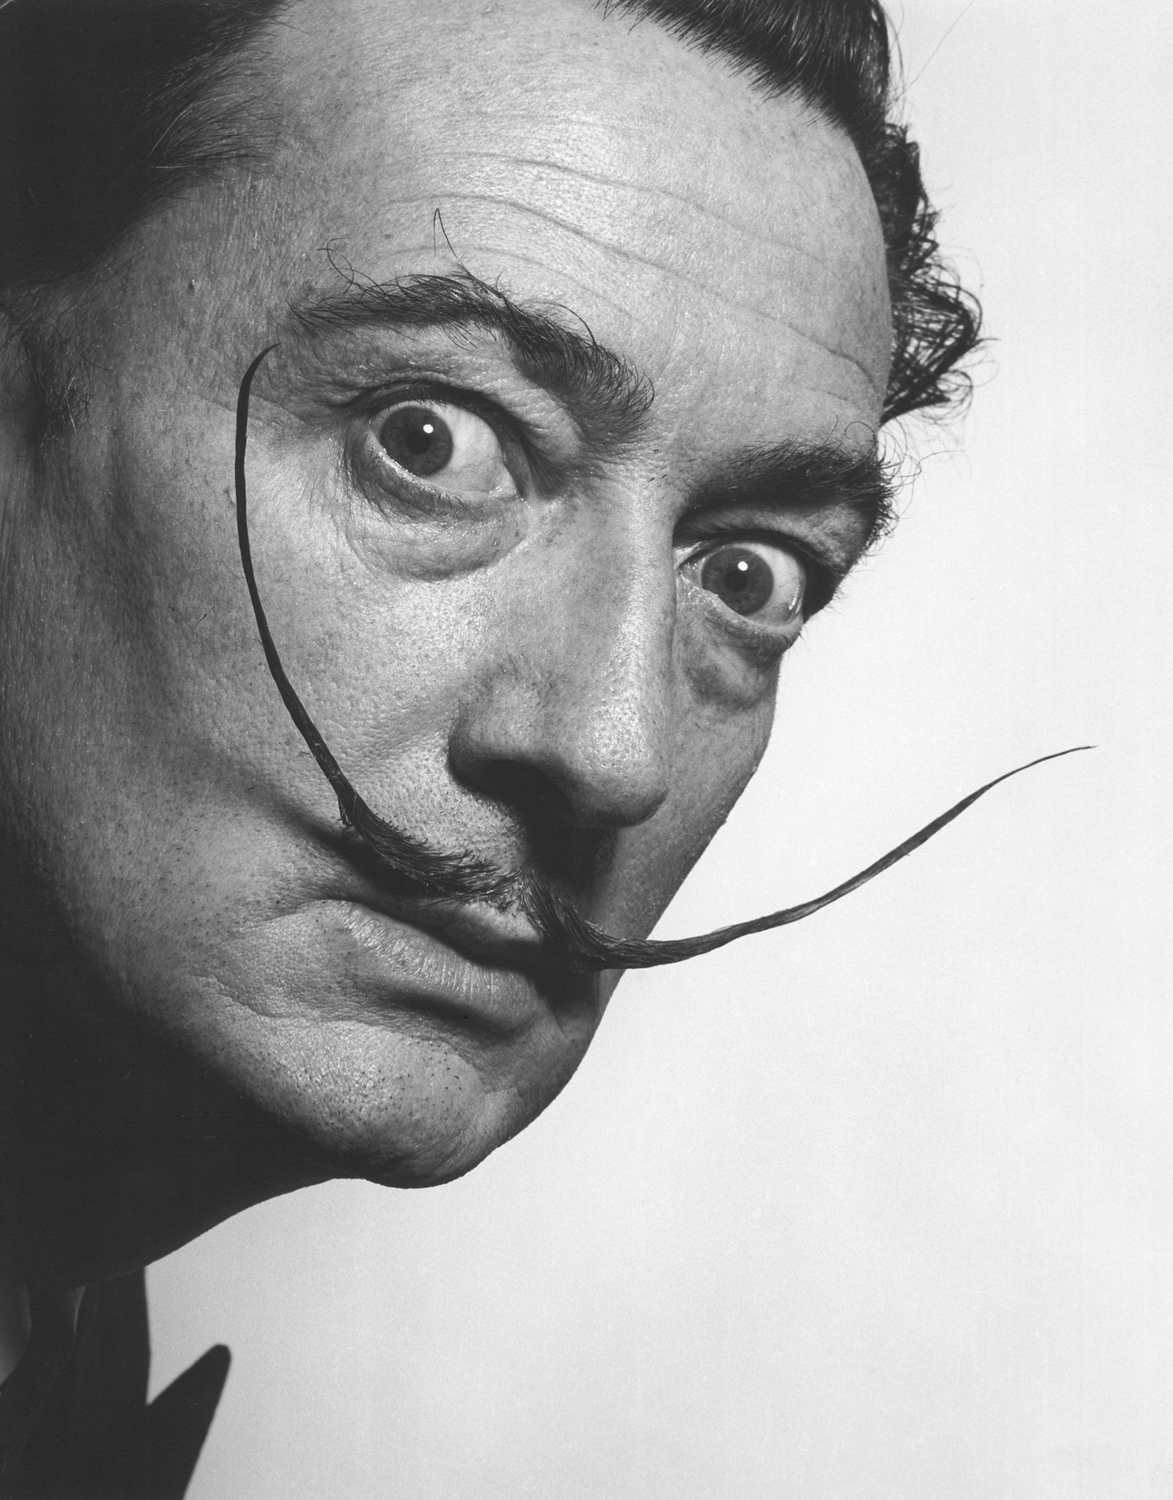 Salvador Dali's painting, Cartel des Don Juan Tenorio, was stolen from a Manhattan gallery in June 2012.